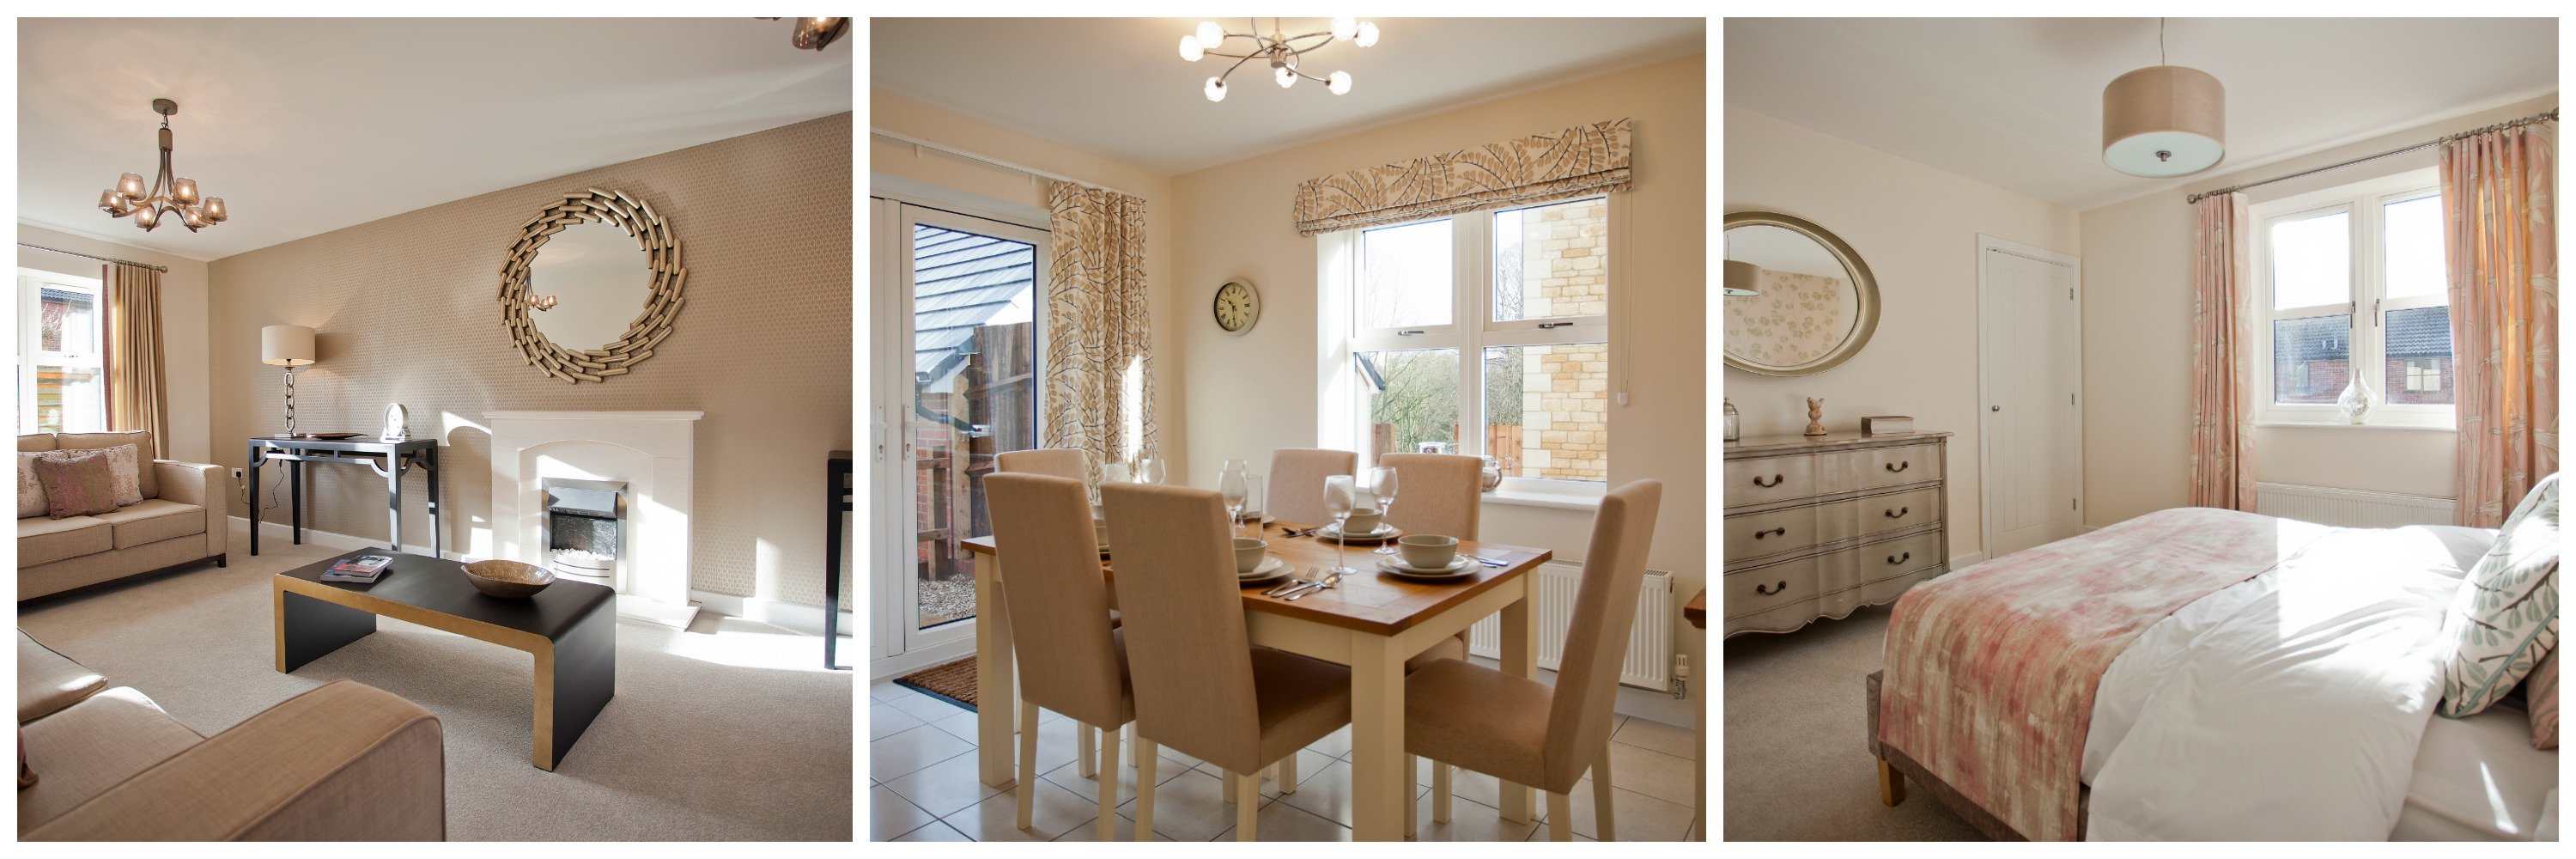 Hills-Homes-previous-developments-witney-interior